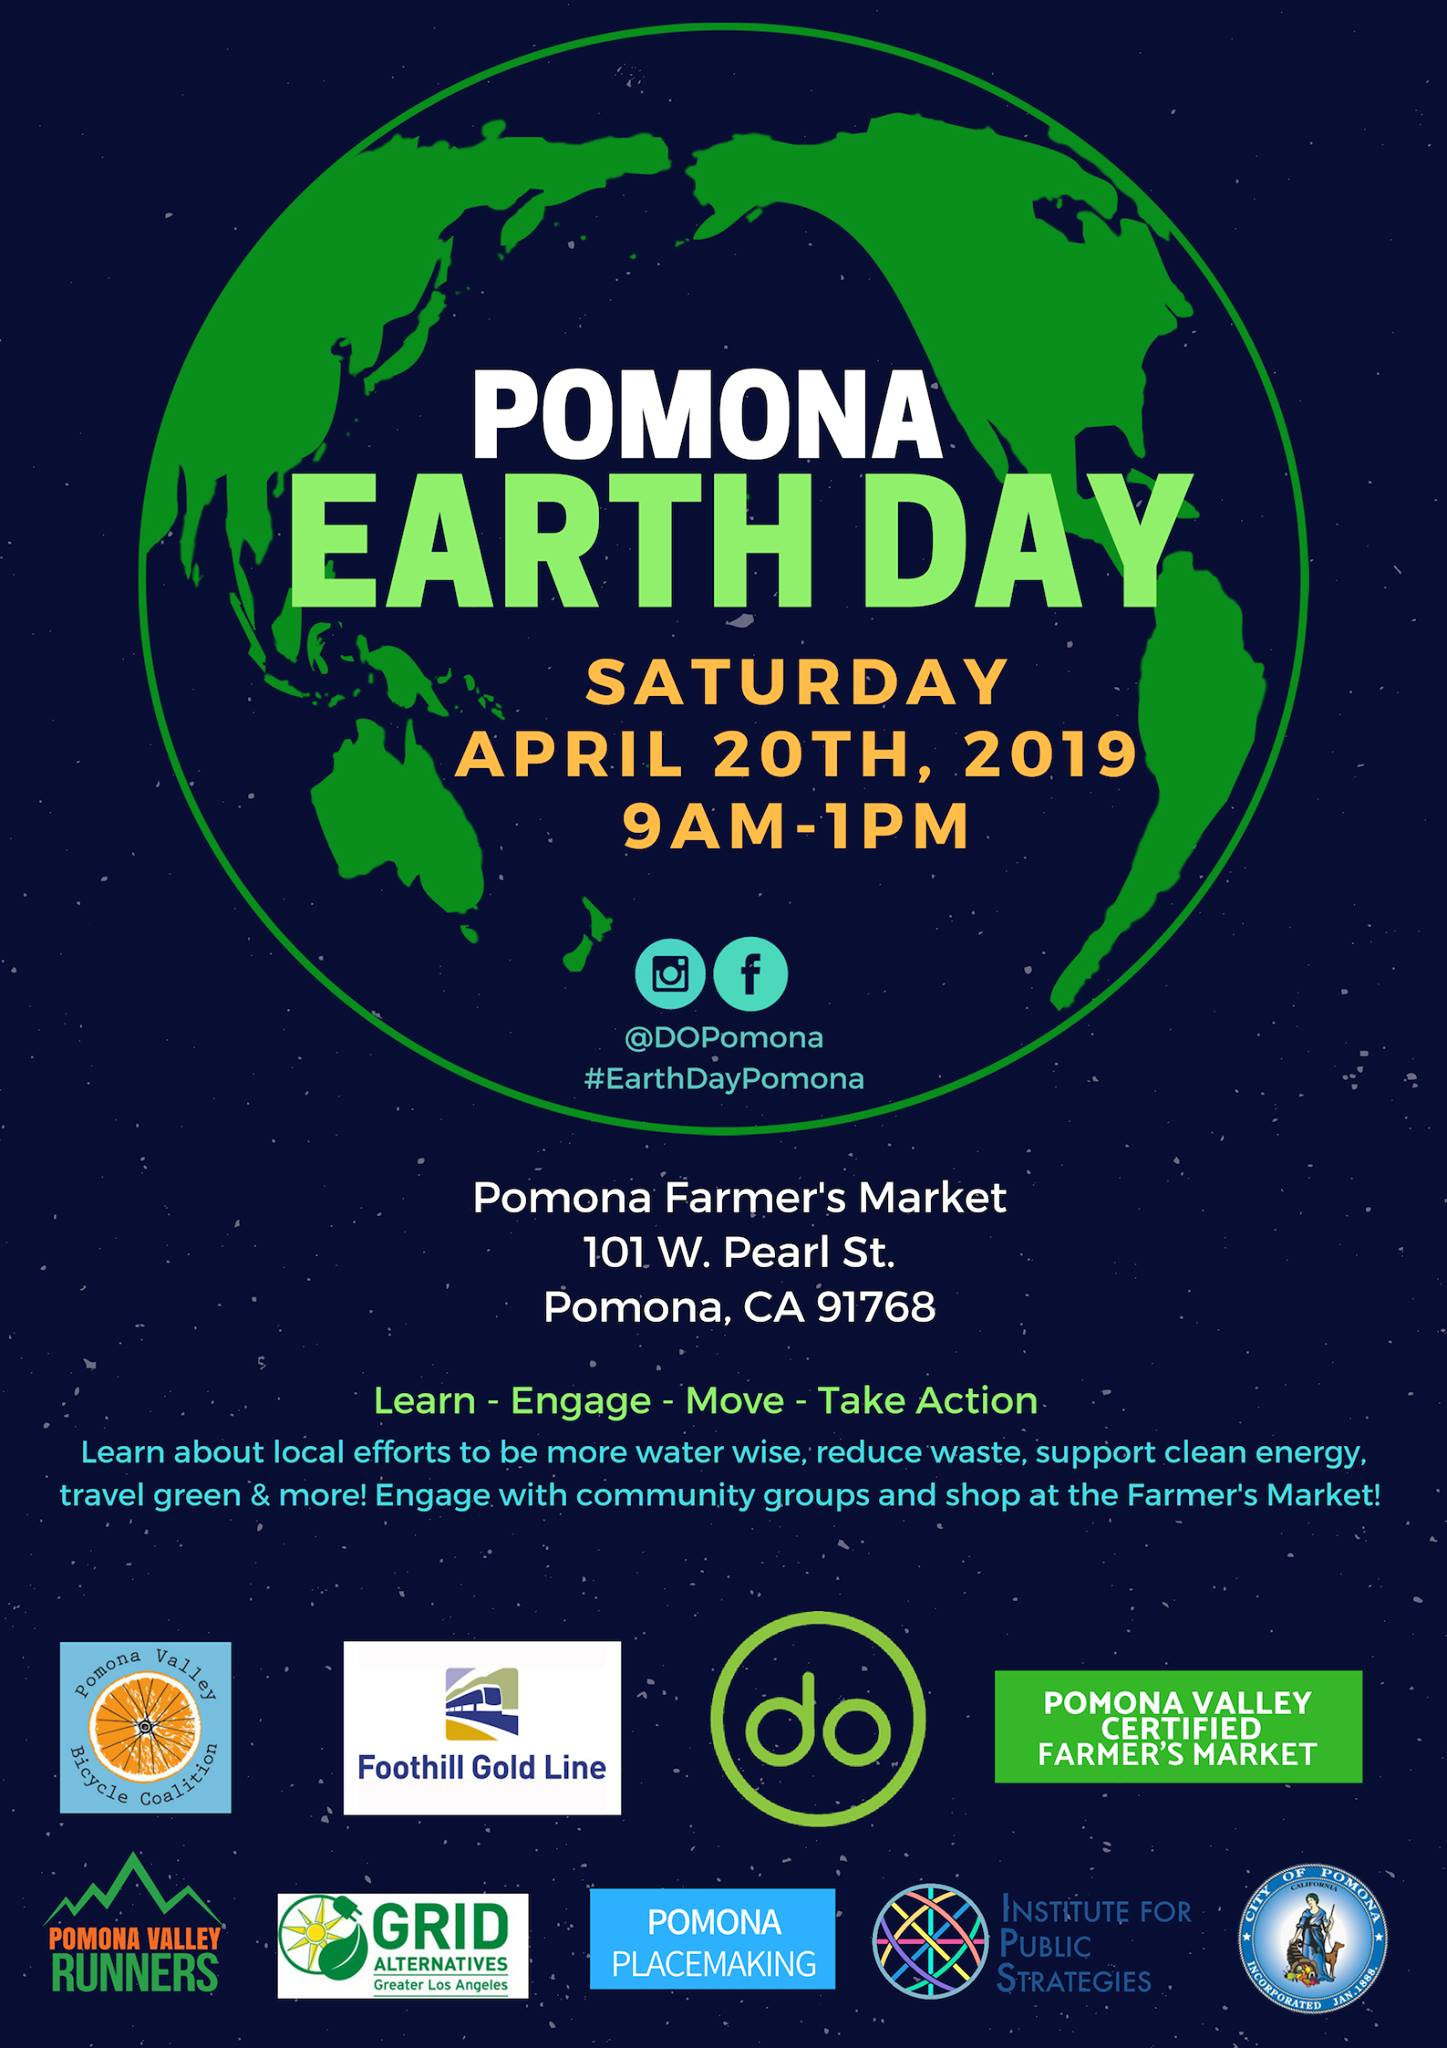 Pomona Earth Day flyer